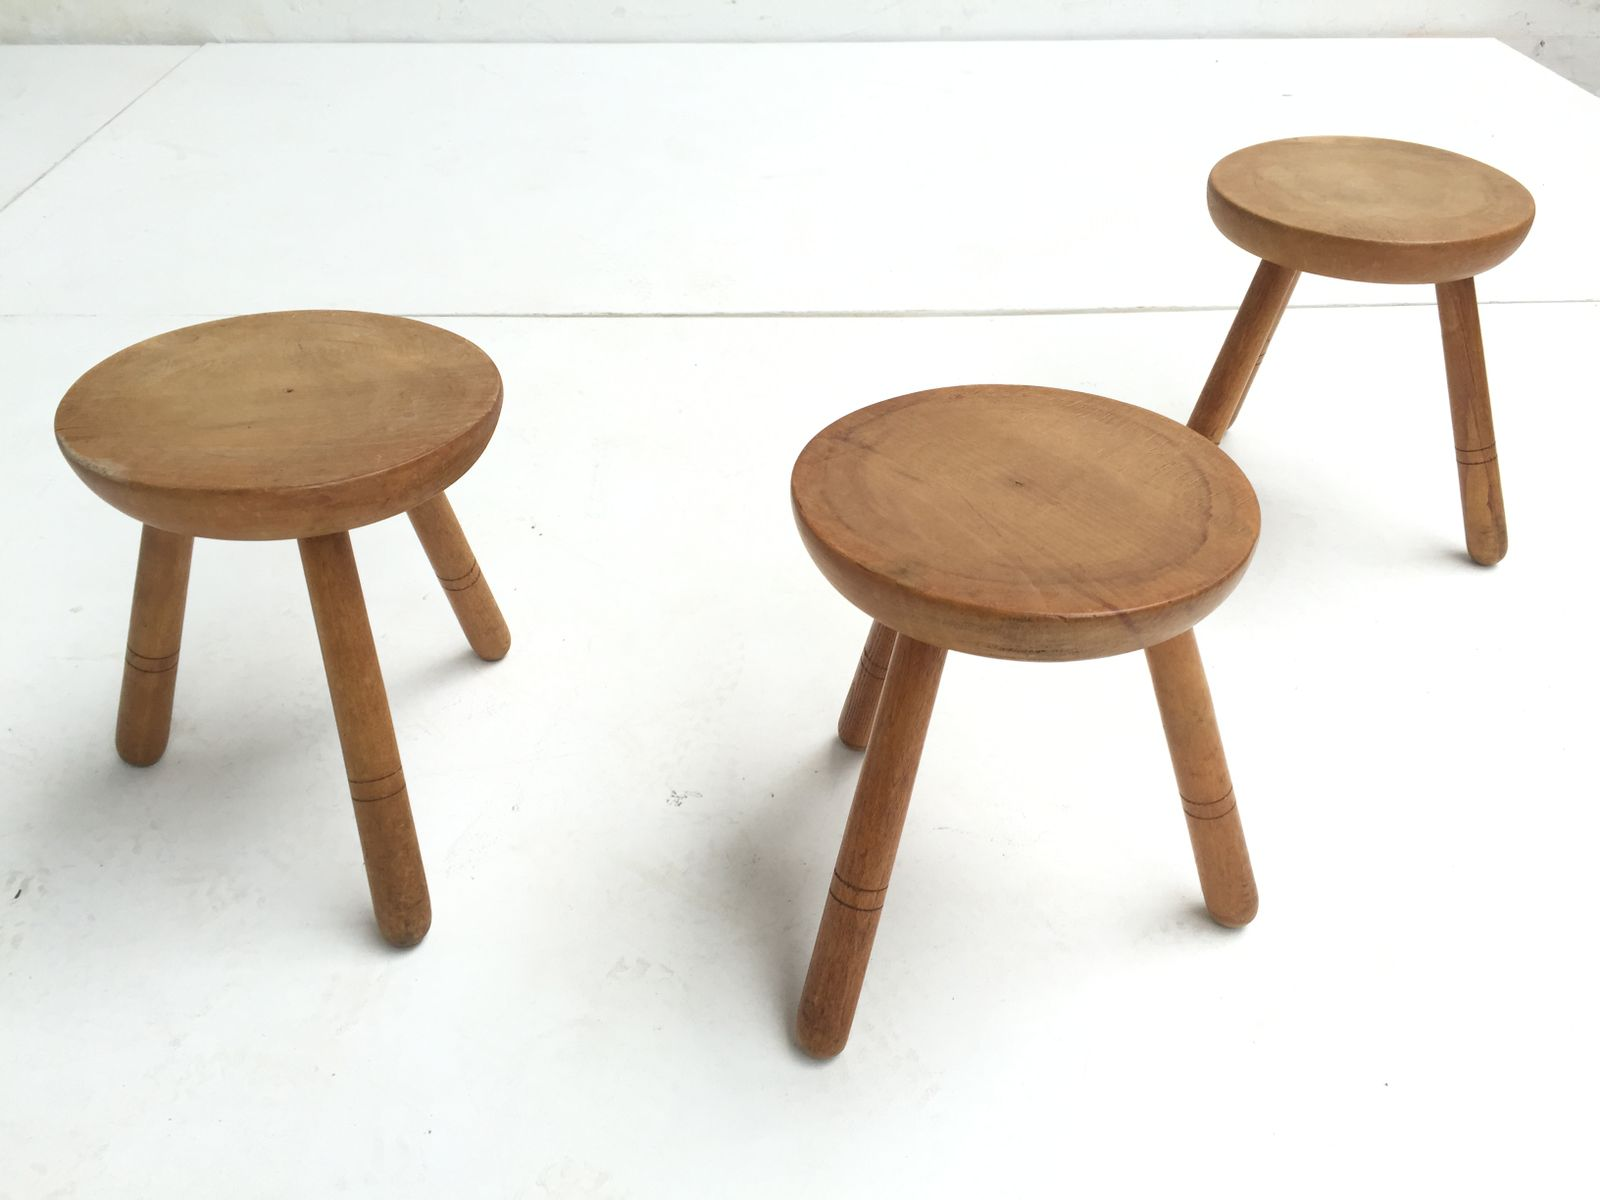 Superb img of Vintage Birch Wood Stools 1970s Set of 3 for sale at Pamono with #714A30 color and 1600x1200 pixels